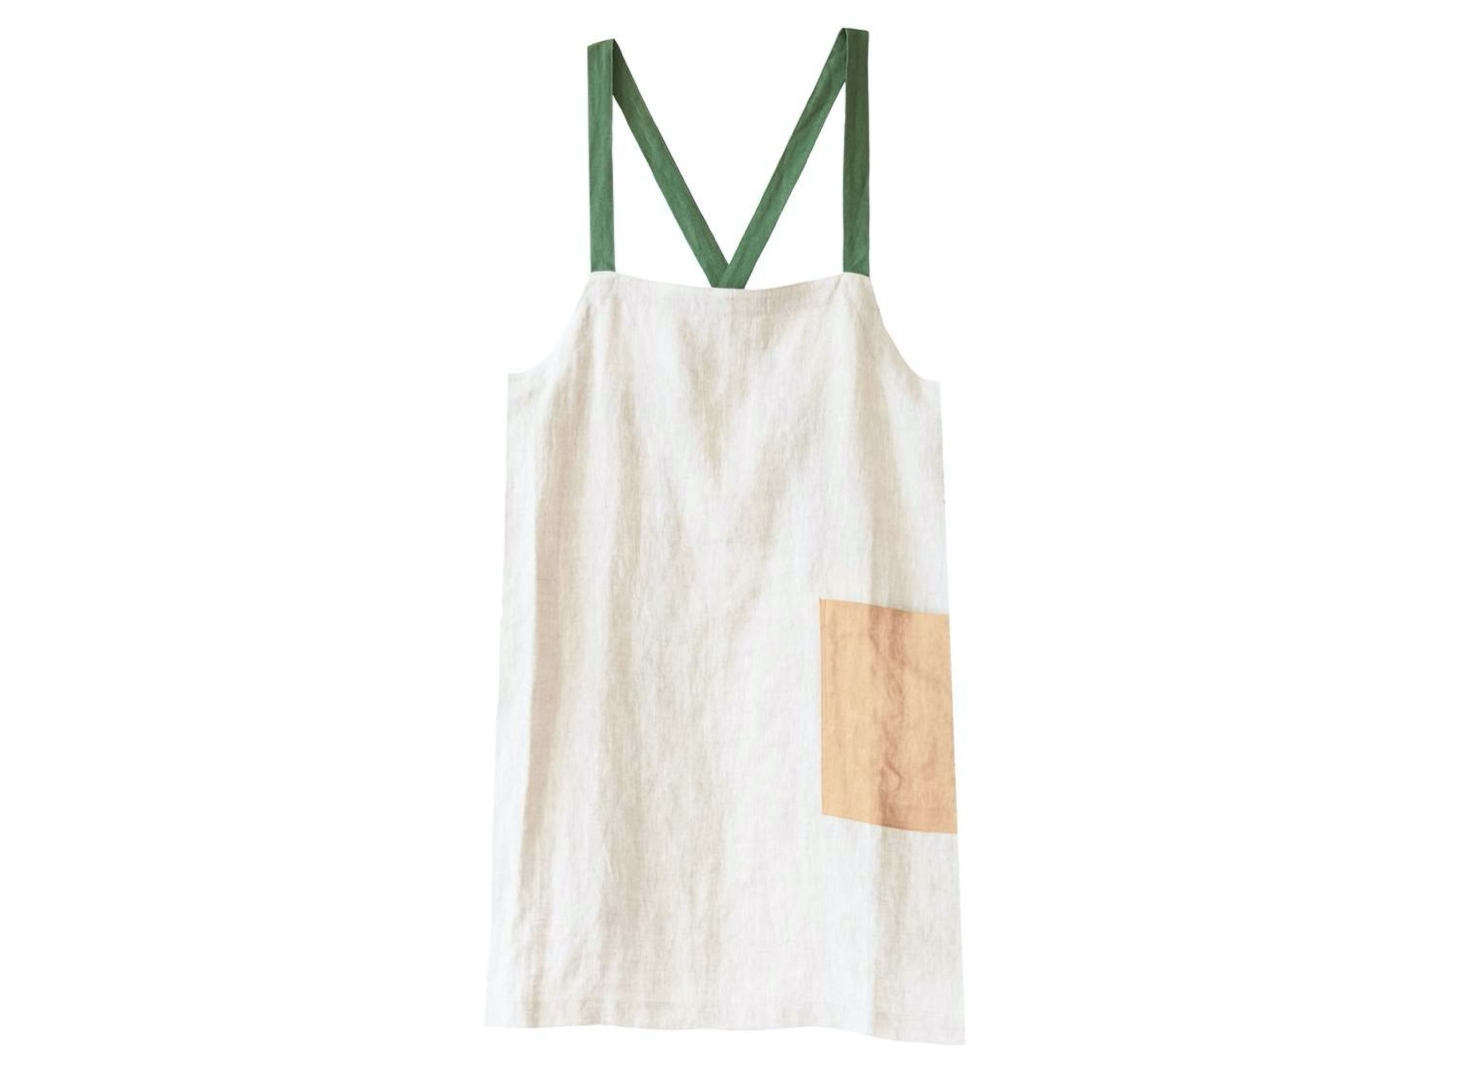 The Criss Cross Brooklyn Fit Apron by Pillowpia is made of stonewashed linen. The apron is available in solid colors for $88 and in multicolored (with a large patch pocket) for $98.